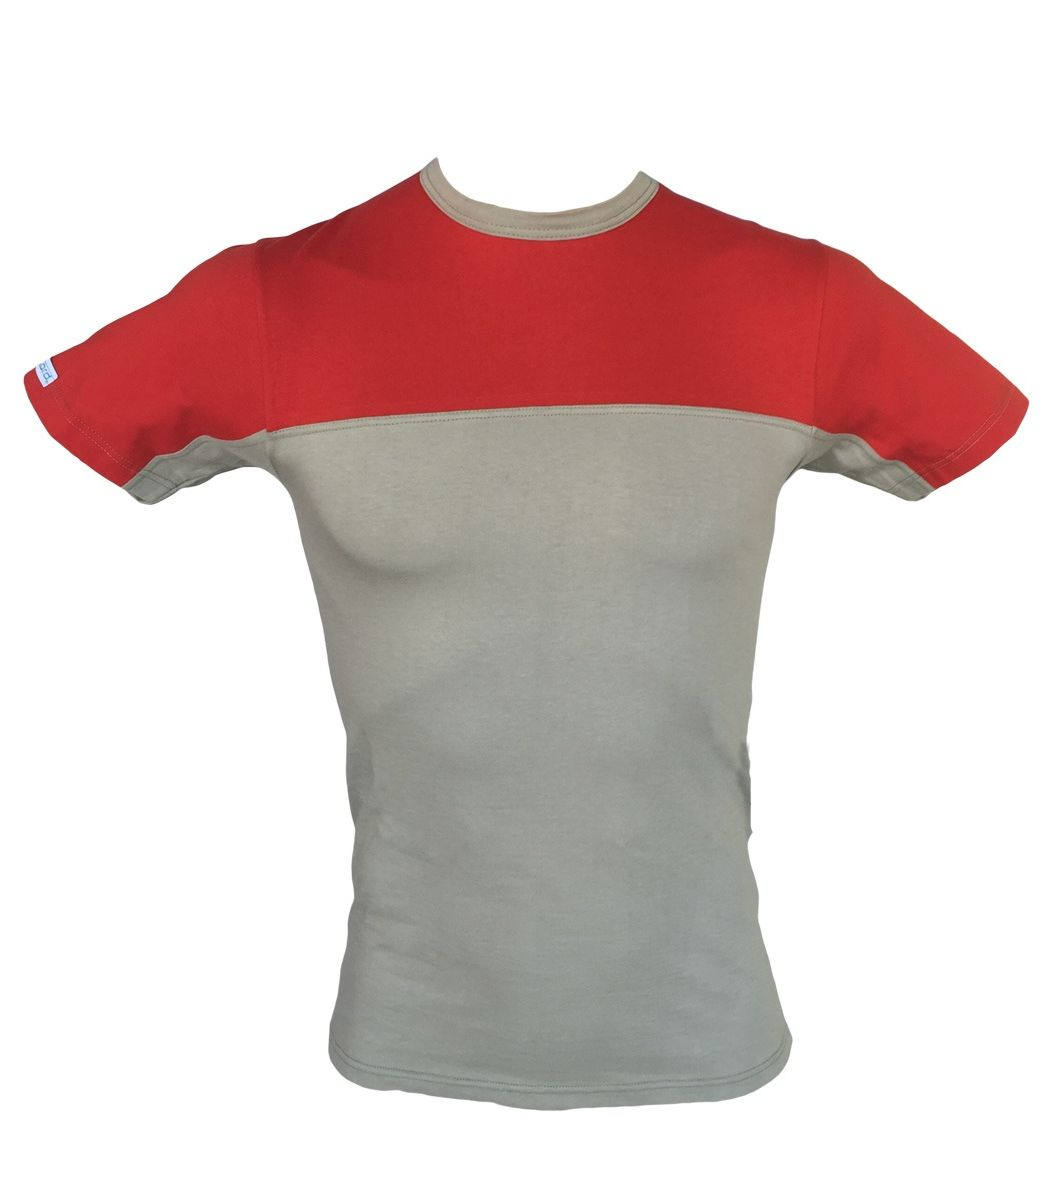 Men T-Shirt, Elastic, Khaki